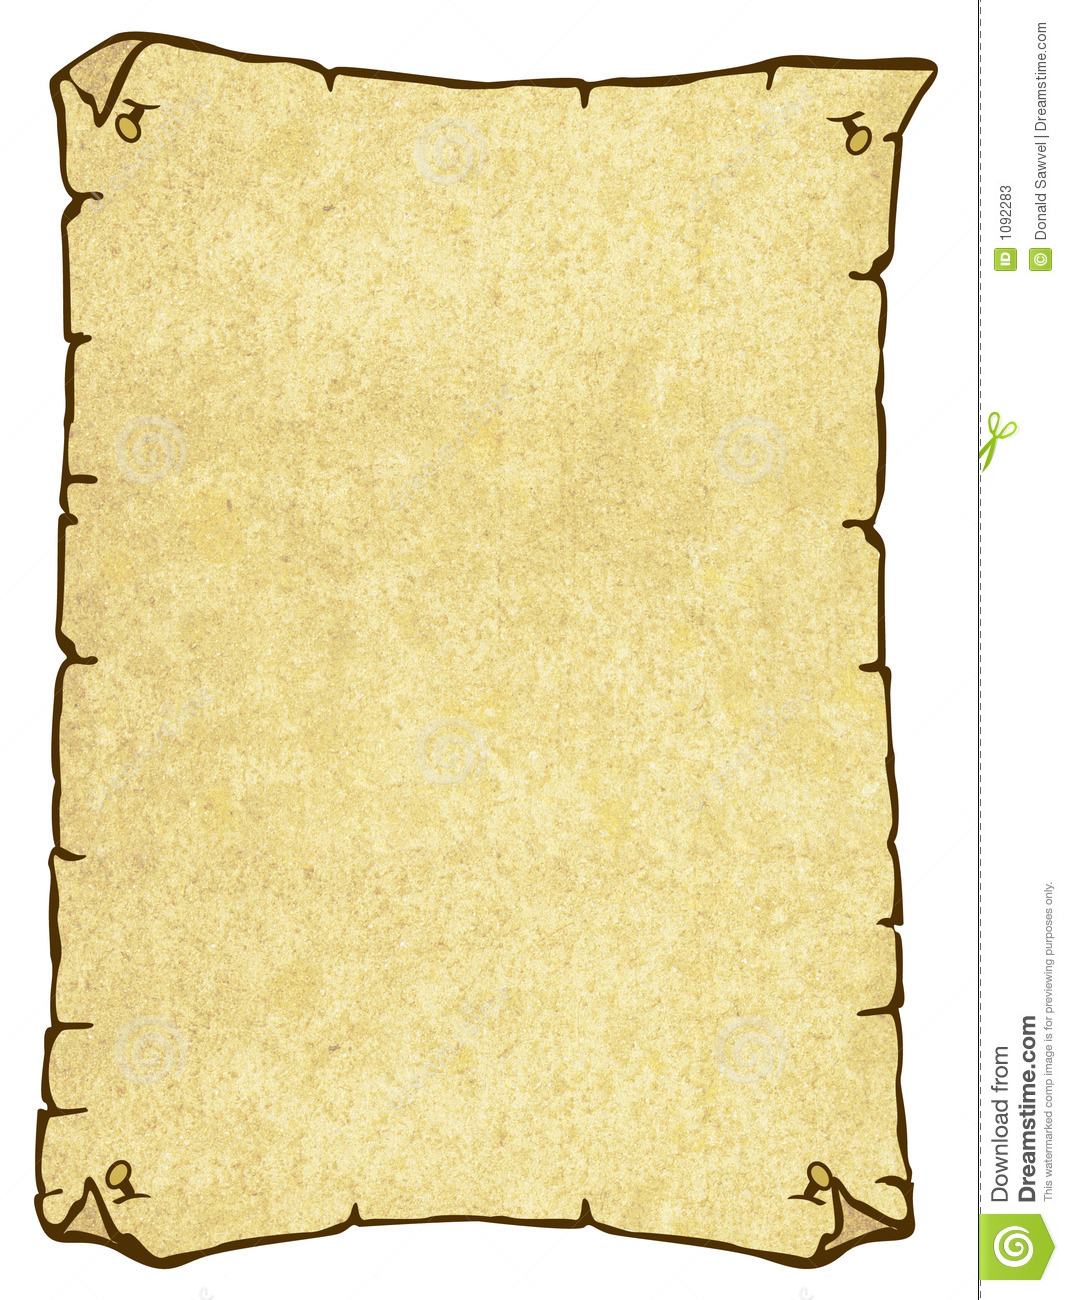 Parchment Paper In The Form Of A Wanted Poster